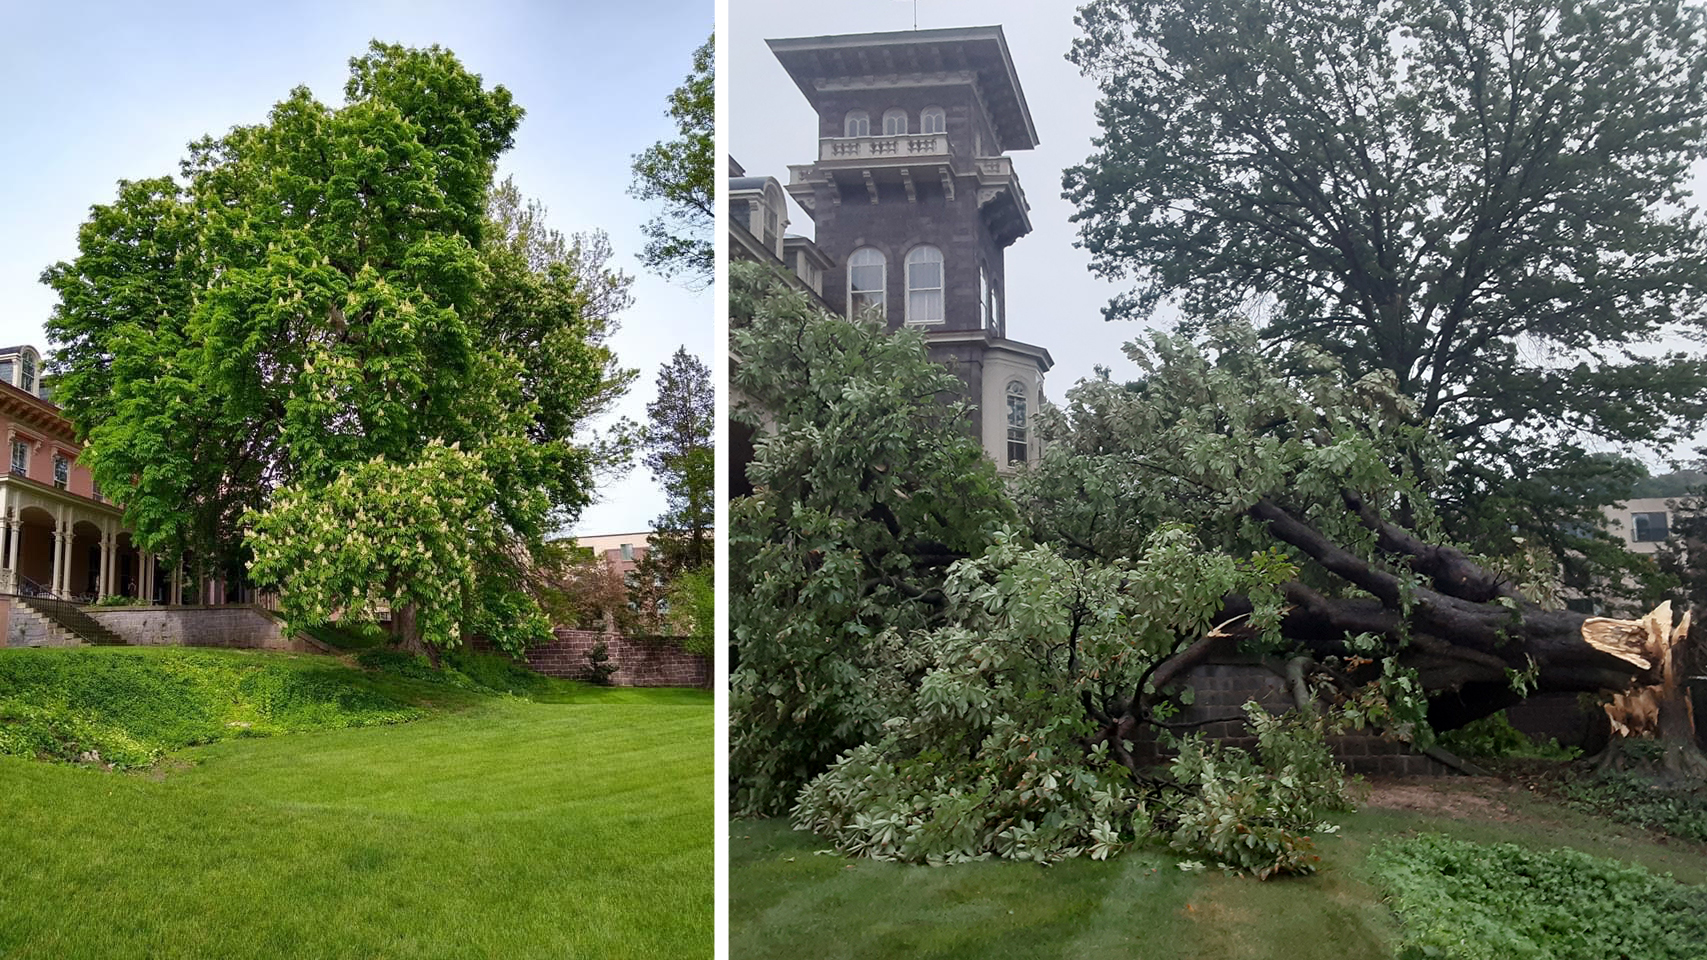 Cornwall Manor in mourning for massive chestnut tree felled by recent weather